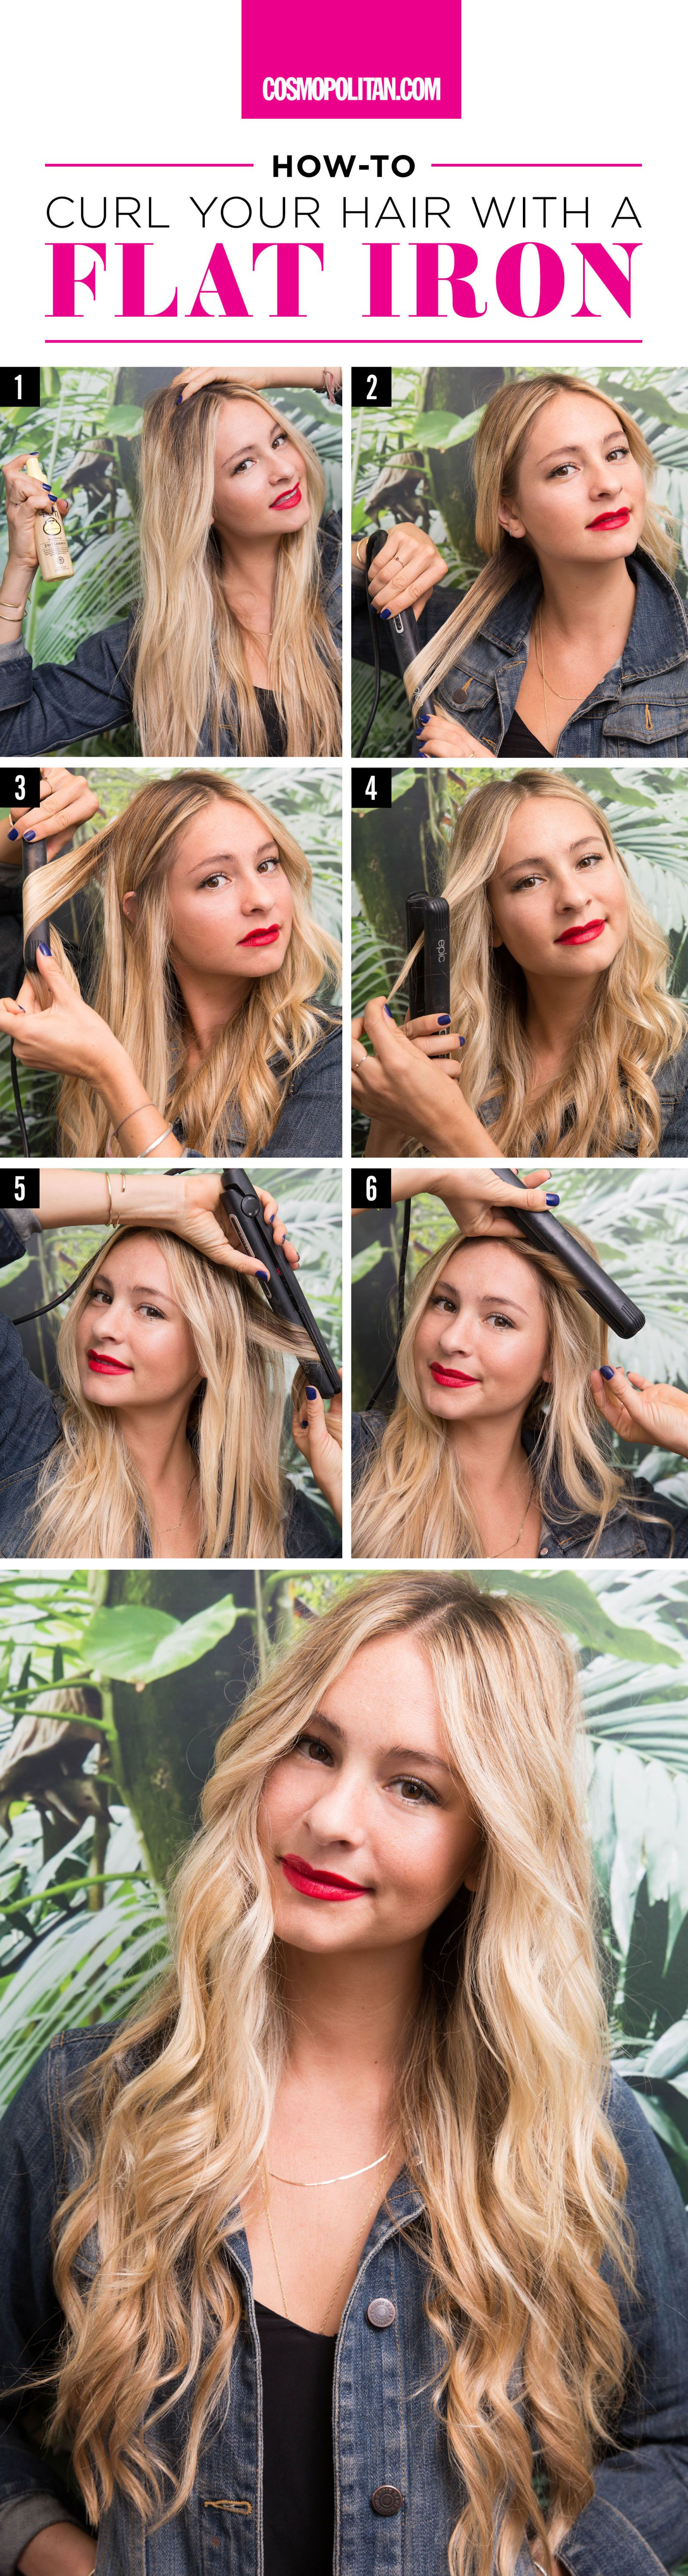 How to curl hair with flat iron video